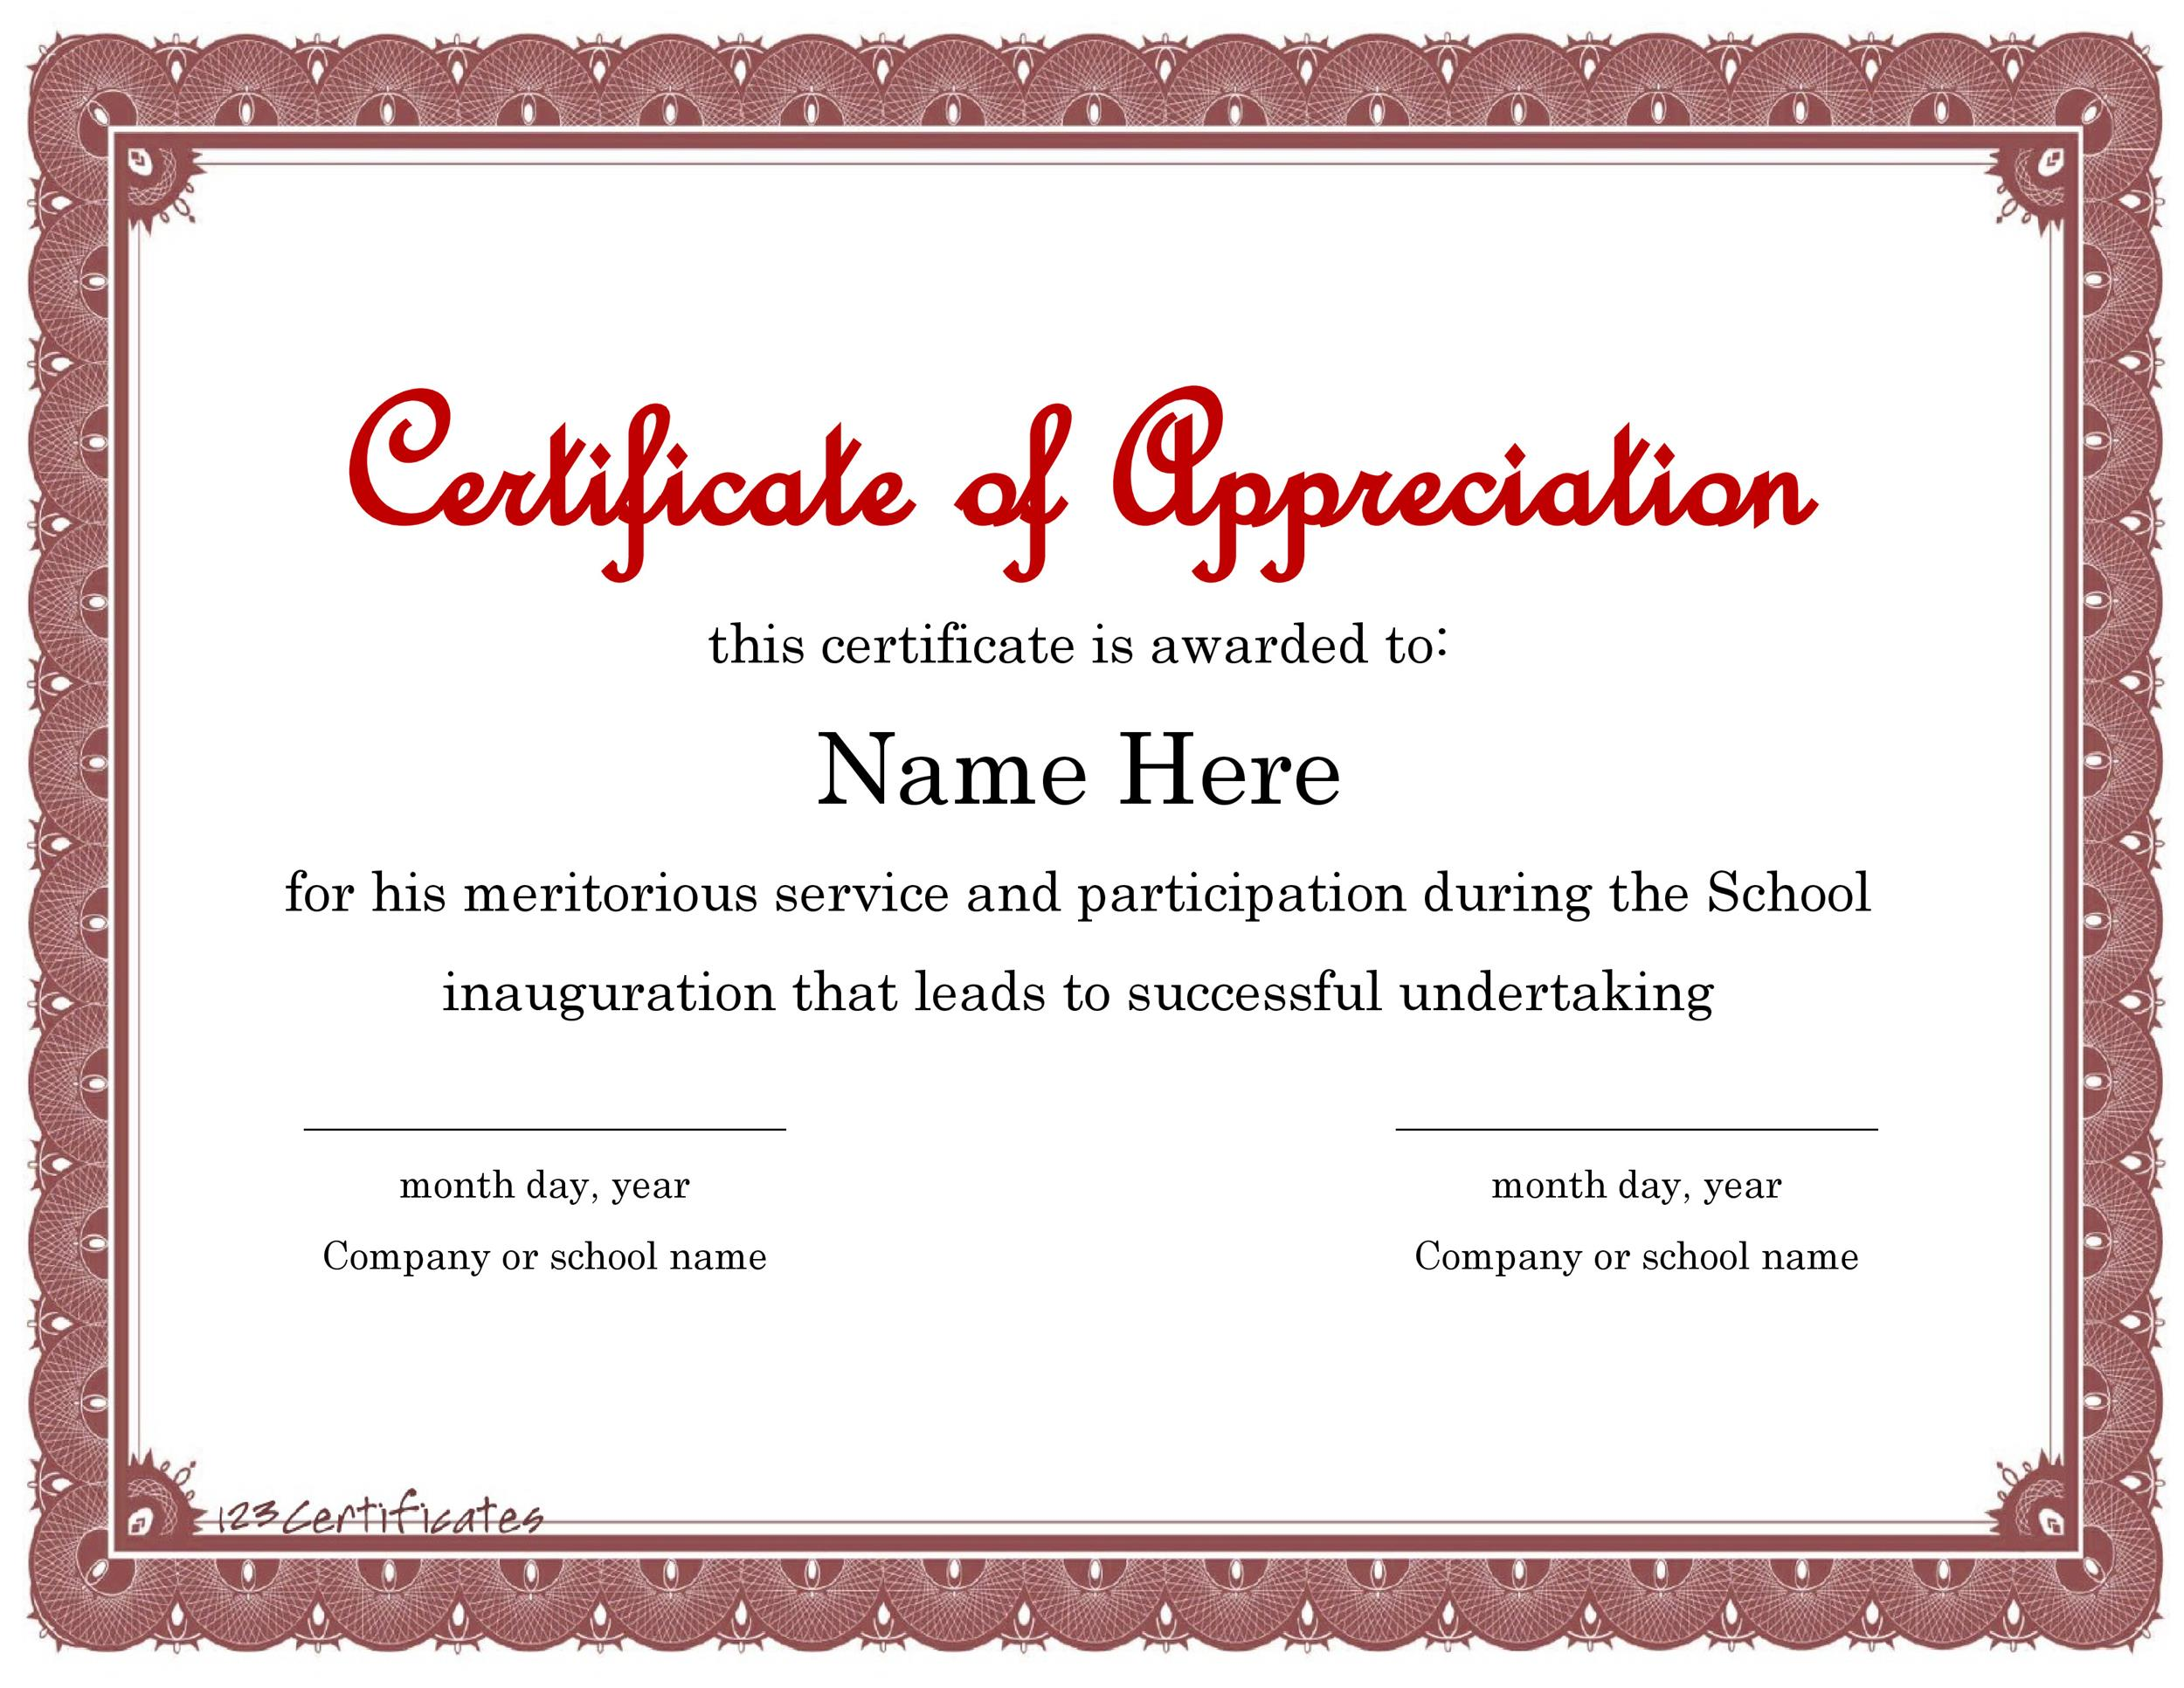 Lovely Printable Certificate Of Appreciation 01 Regard To Certificates Of Appreciation Wording Samples